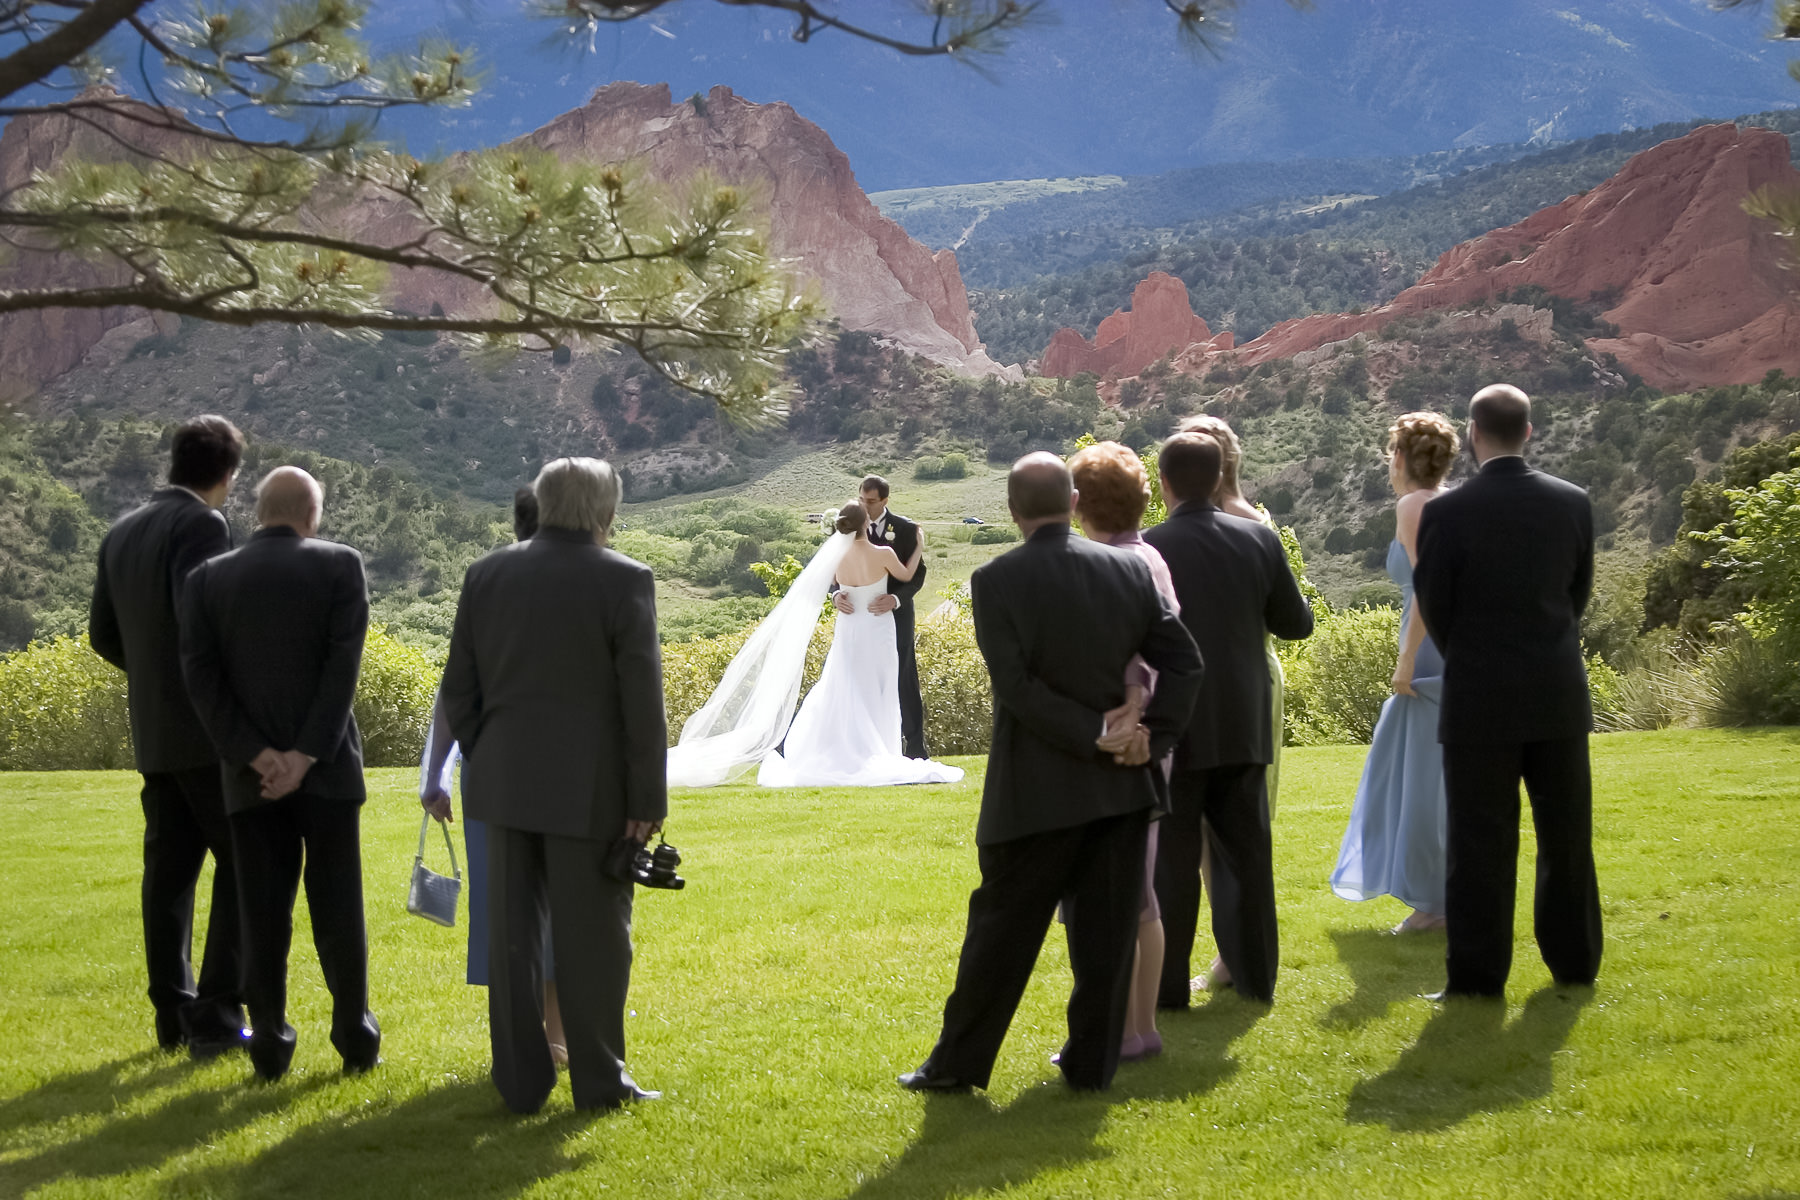 Bride and groom on the lawn of the Garden of the Gods Club being watched by wedding guests.